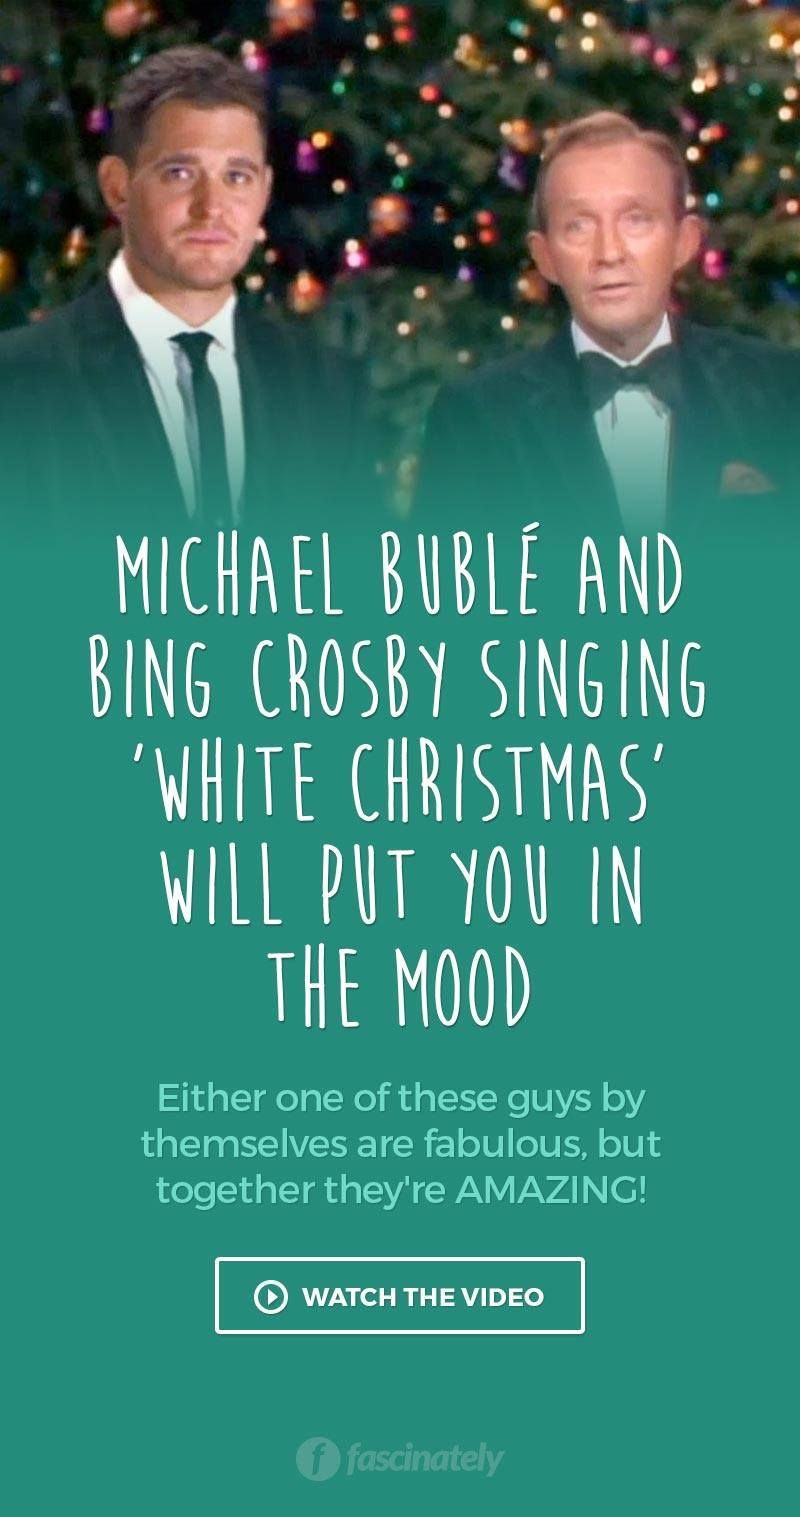 Michael Buble White Christmas.Michael Buble And Bing Crosby Singing White Christmas Will